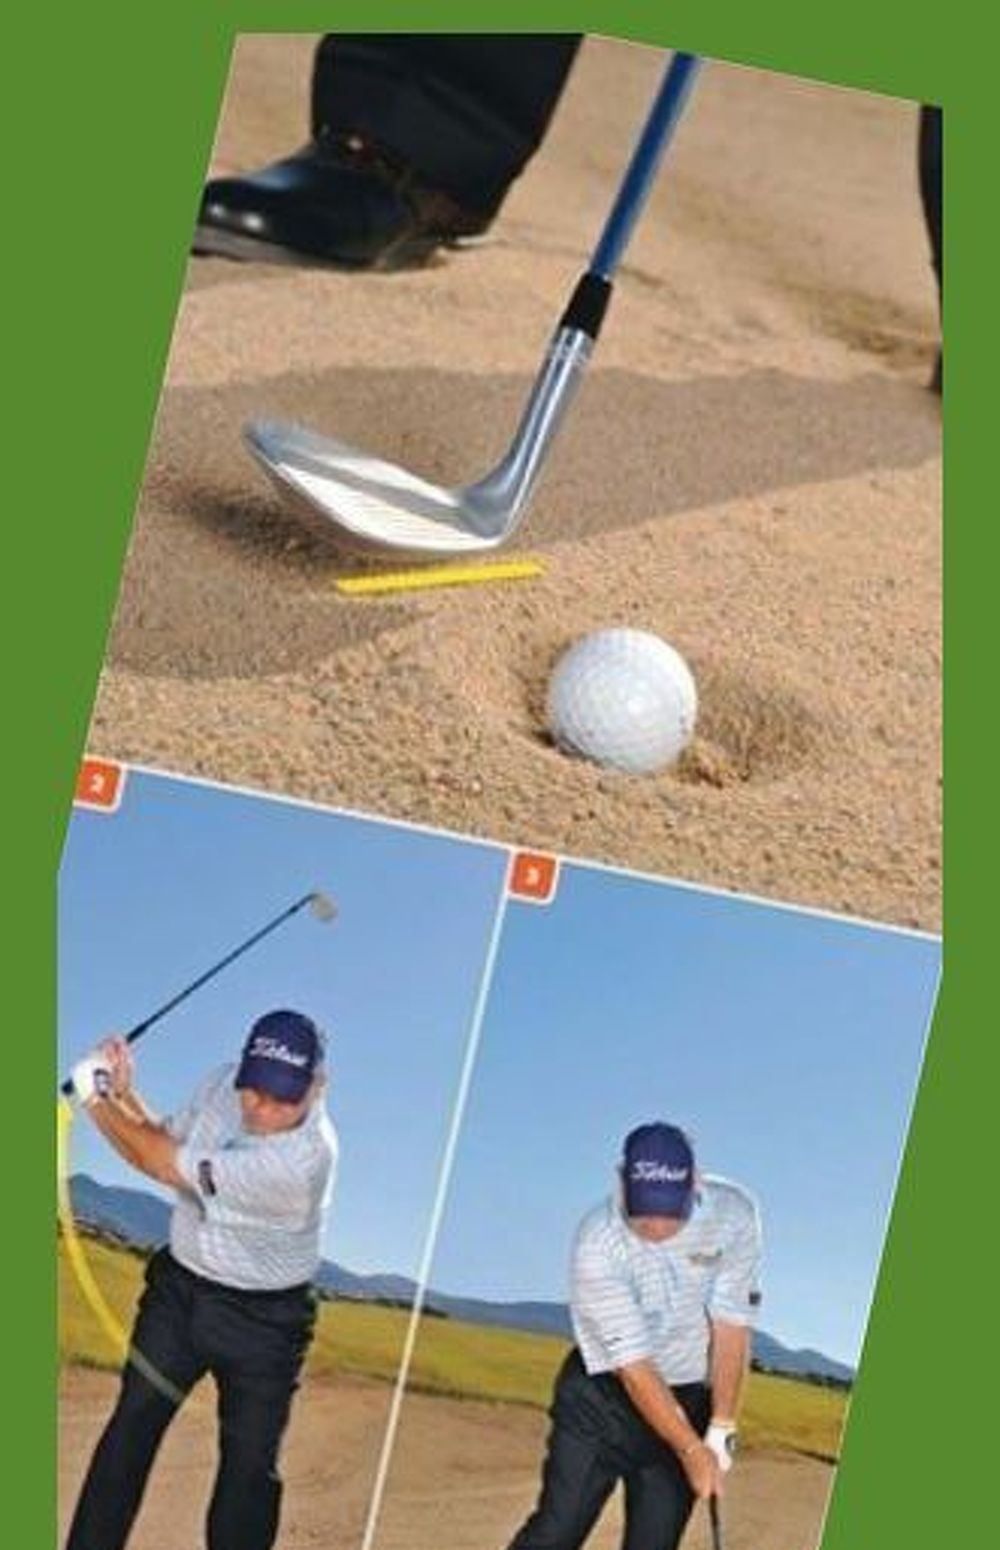 How To Fix A Broken Golf Swing Golf lessons, Golf tips